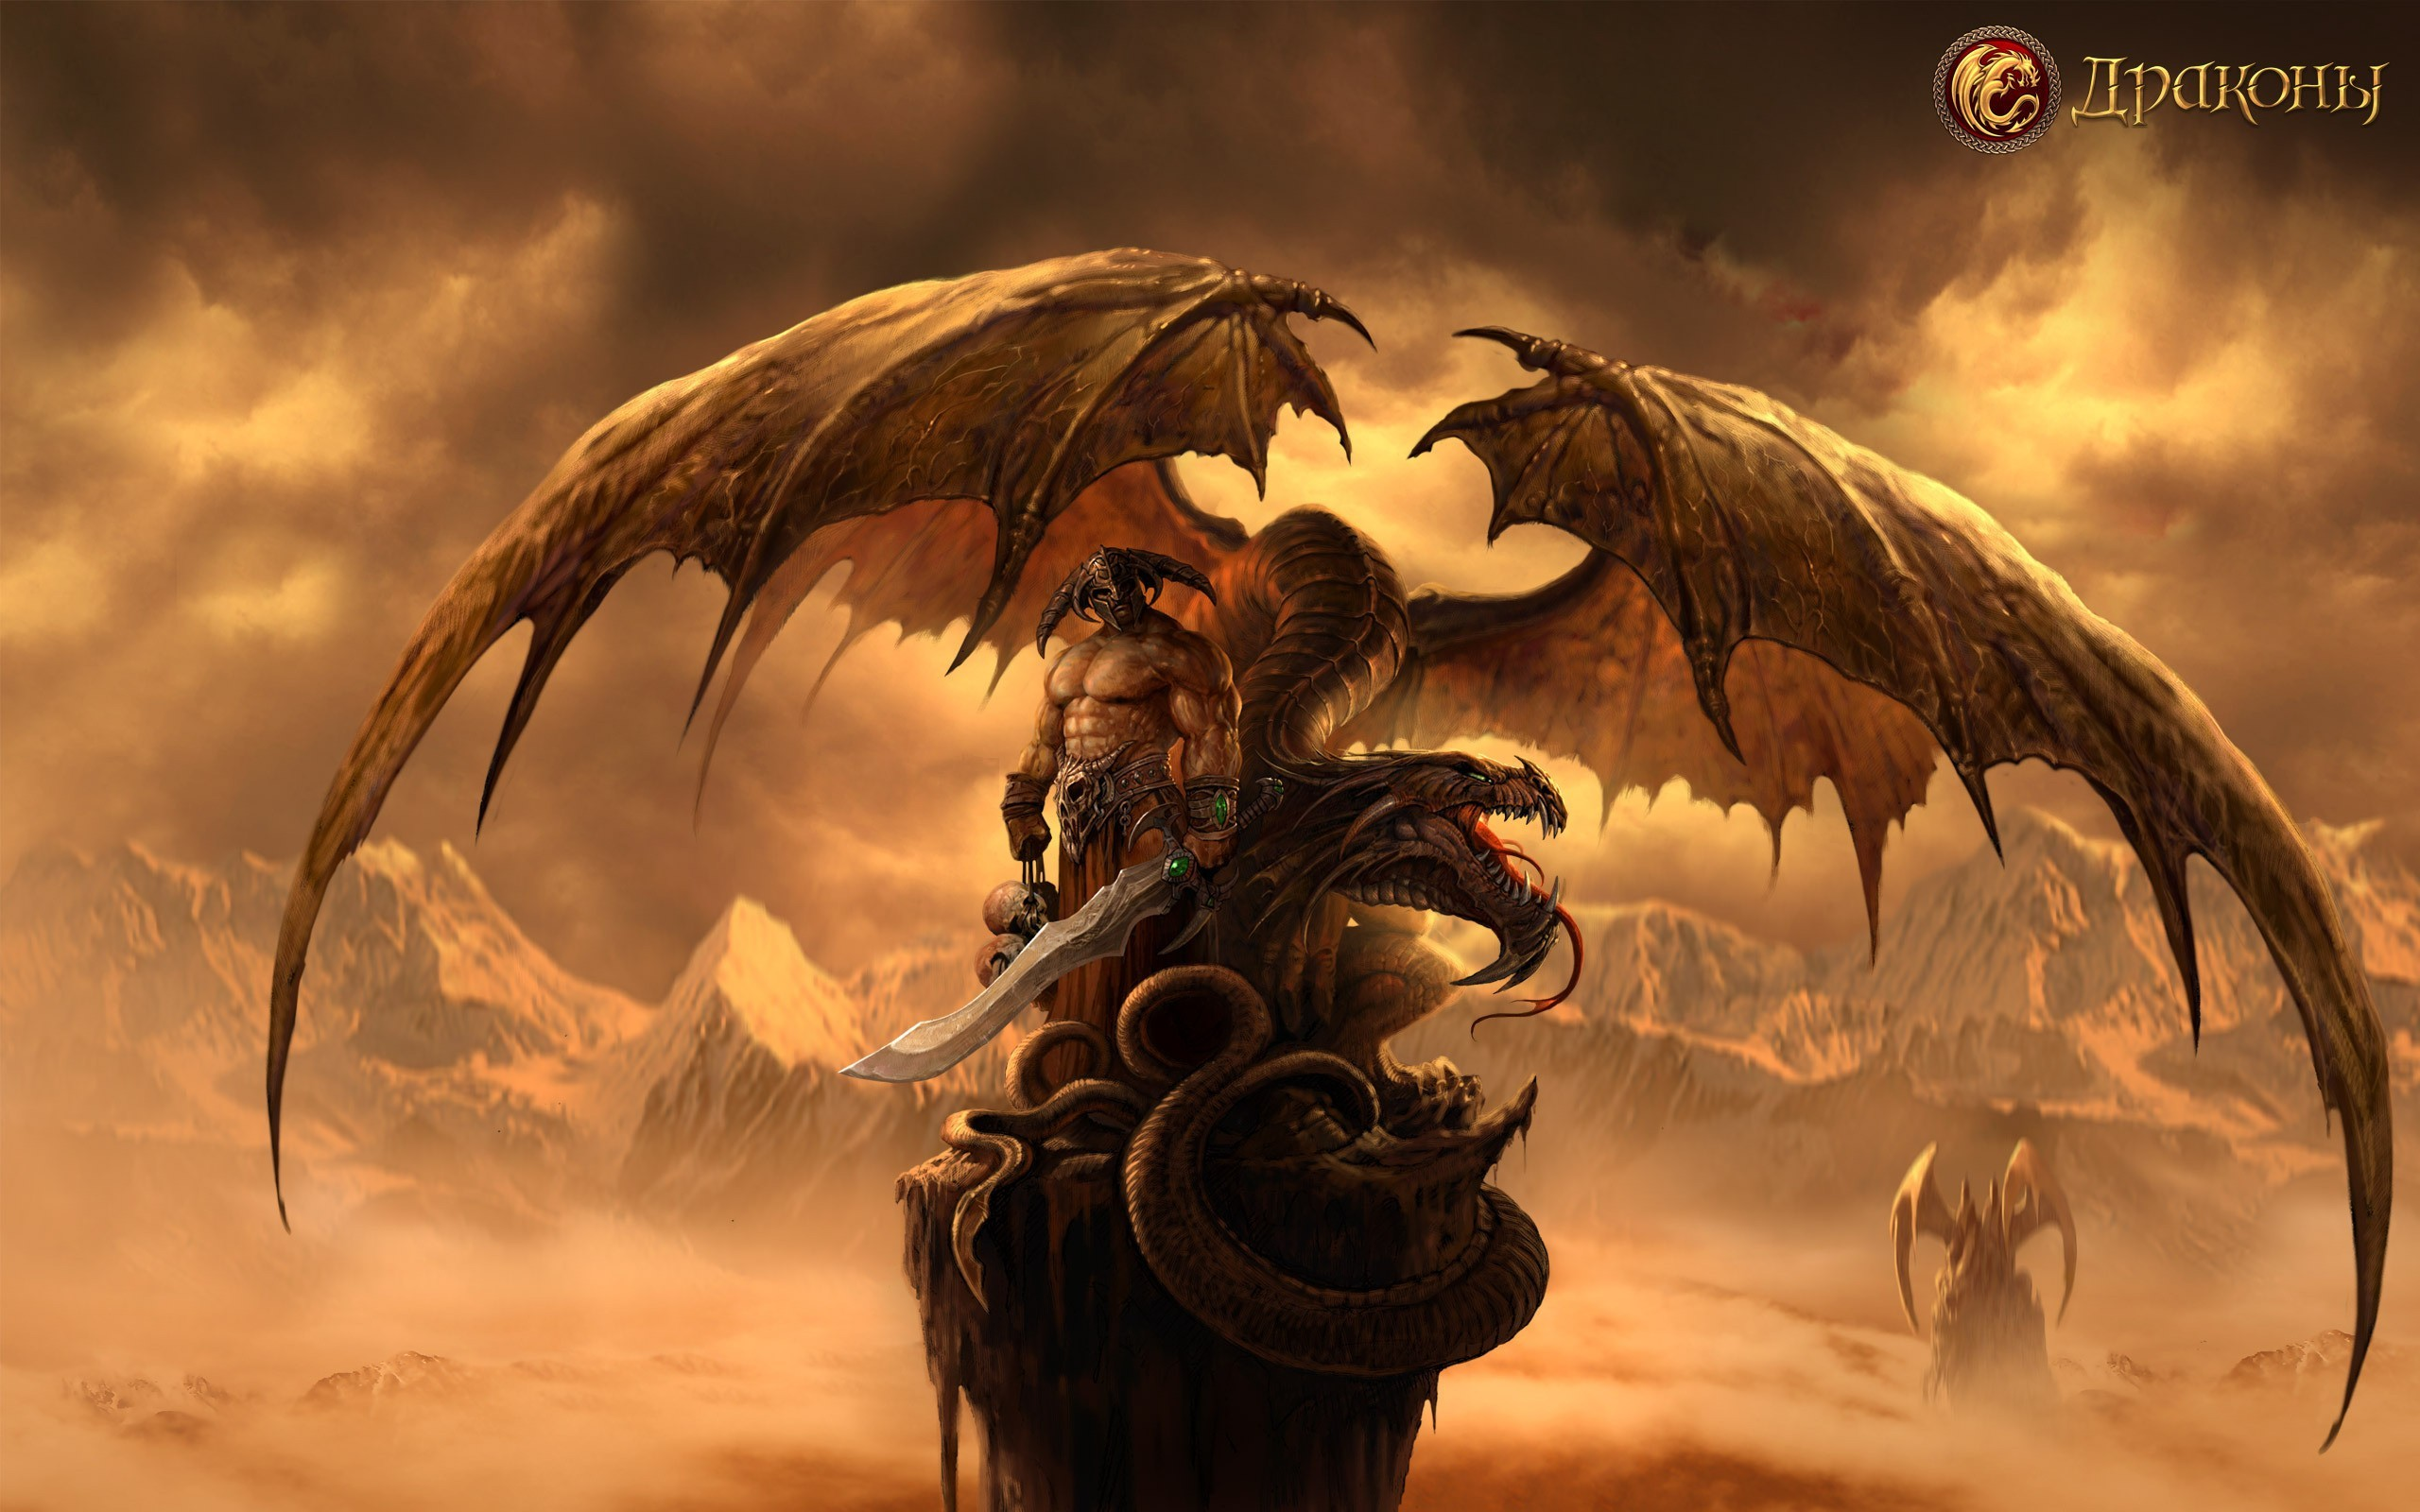 the Valley of Dragons Wallpaper, Valley of Dragons iPhone Wallpaper .